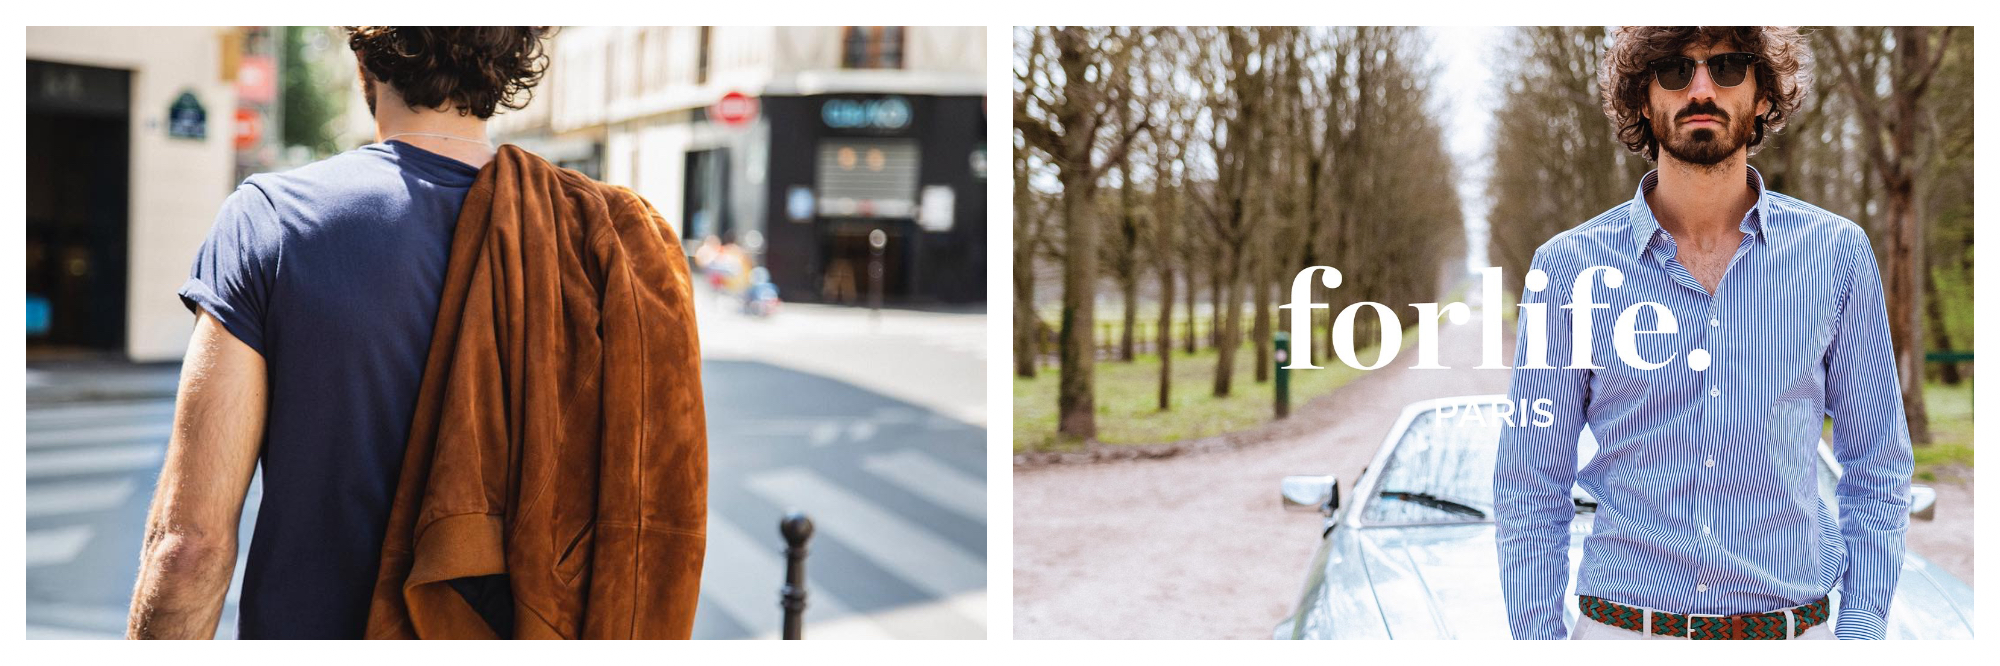 On left: a male model causally crosses a street in Paris with his brown suede jacket slung over his shoulder, designed by the ethical French fashion brand forlife. On right: a campaign poster for the ethical French fashion brand forlife. A male model stands in front of a vintage car on a beautiful but deserted country road. He wears a blue and white striped button down and dark sunglasses.